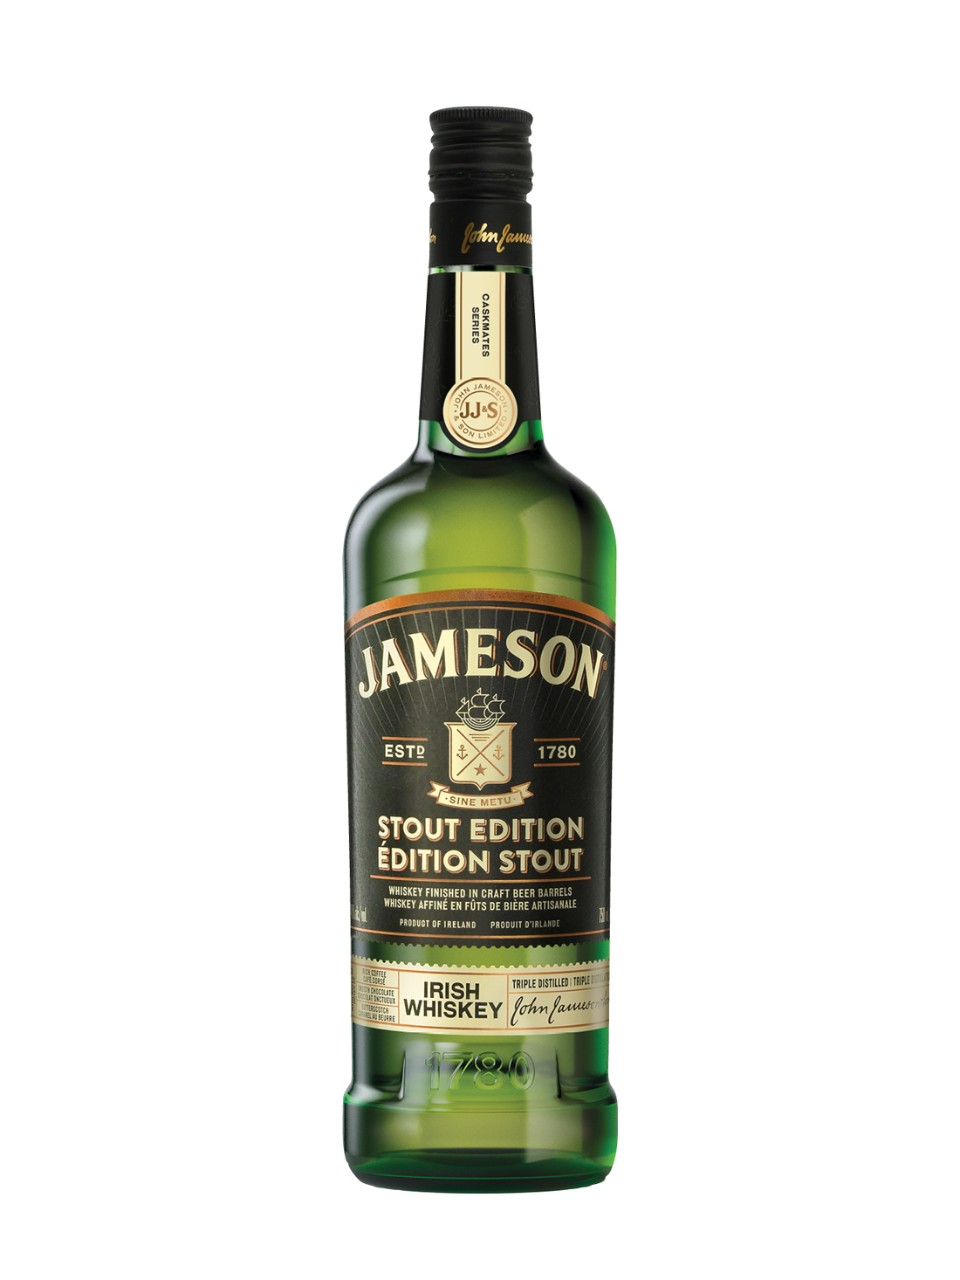 Jameson Caskmates Stout Irish Whiskey from LCBO